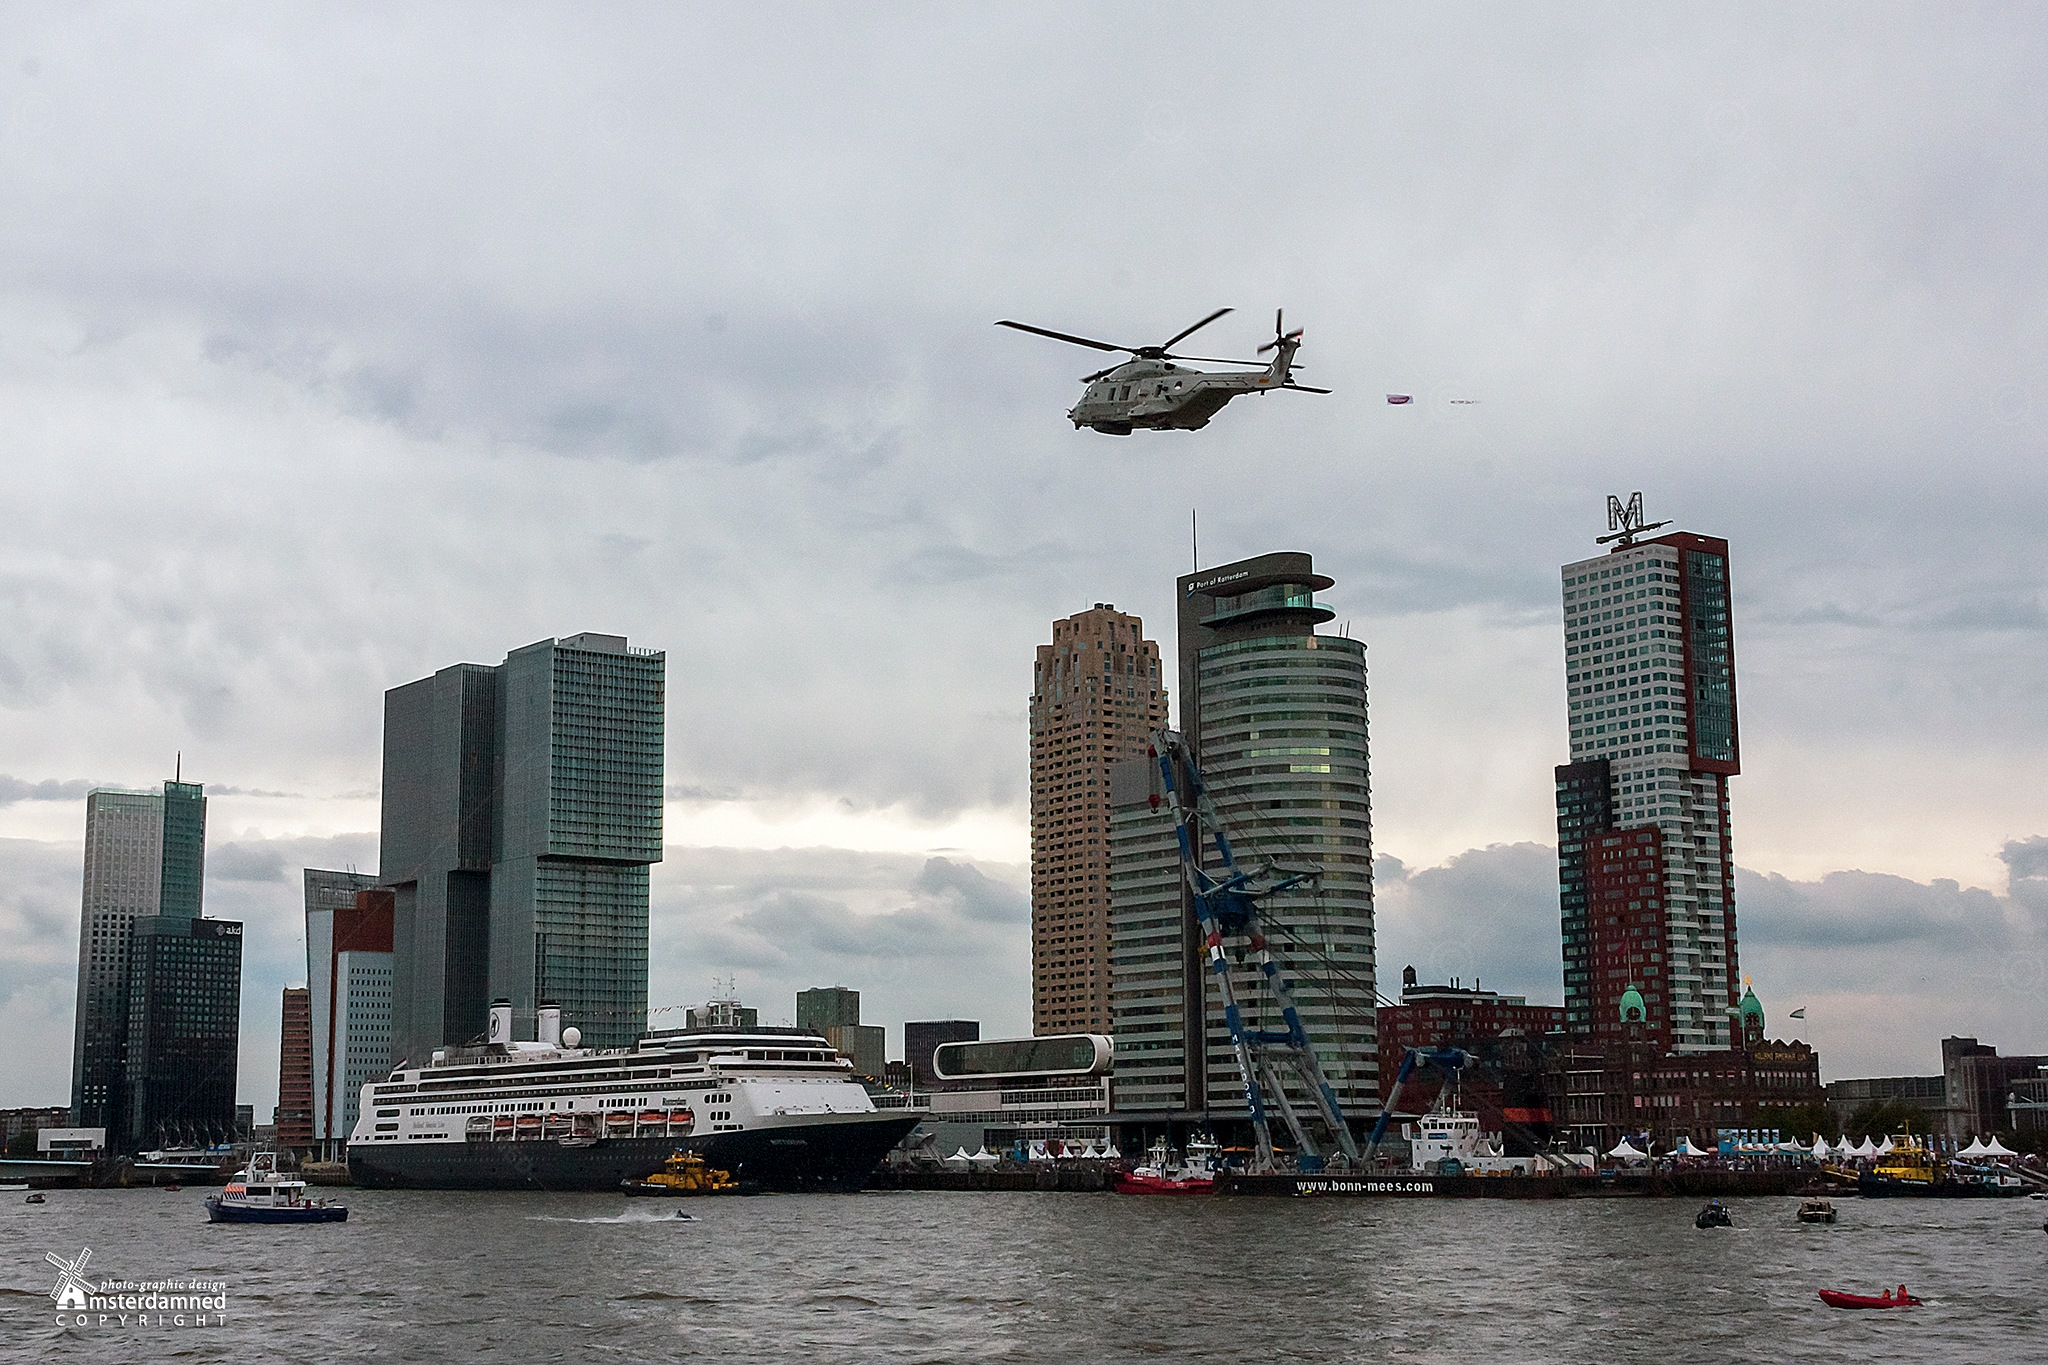 Rotterdam, The Netherlands by Michael